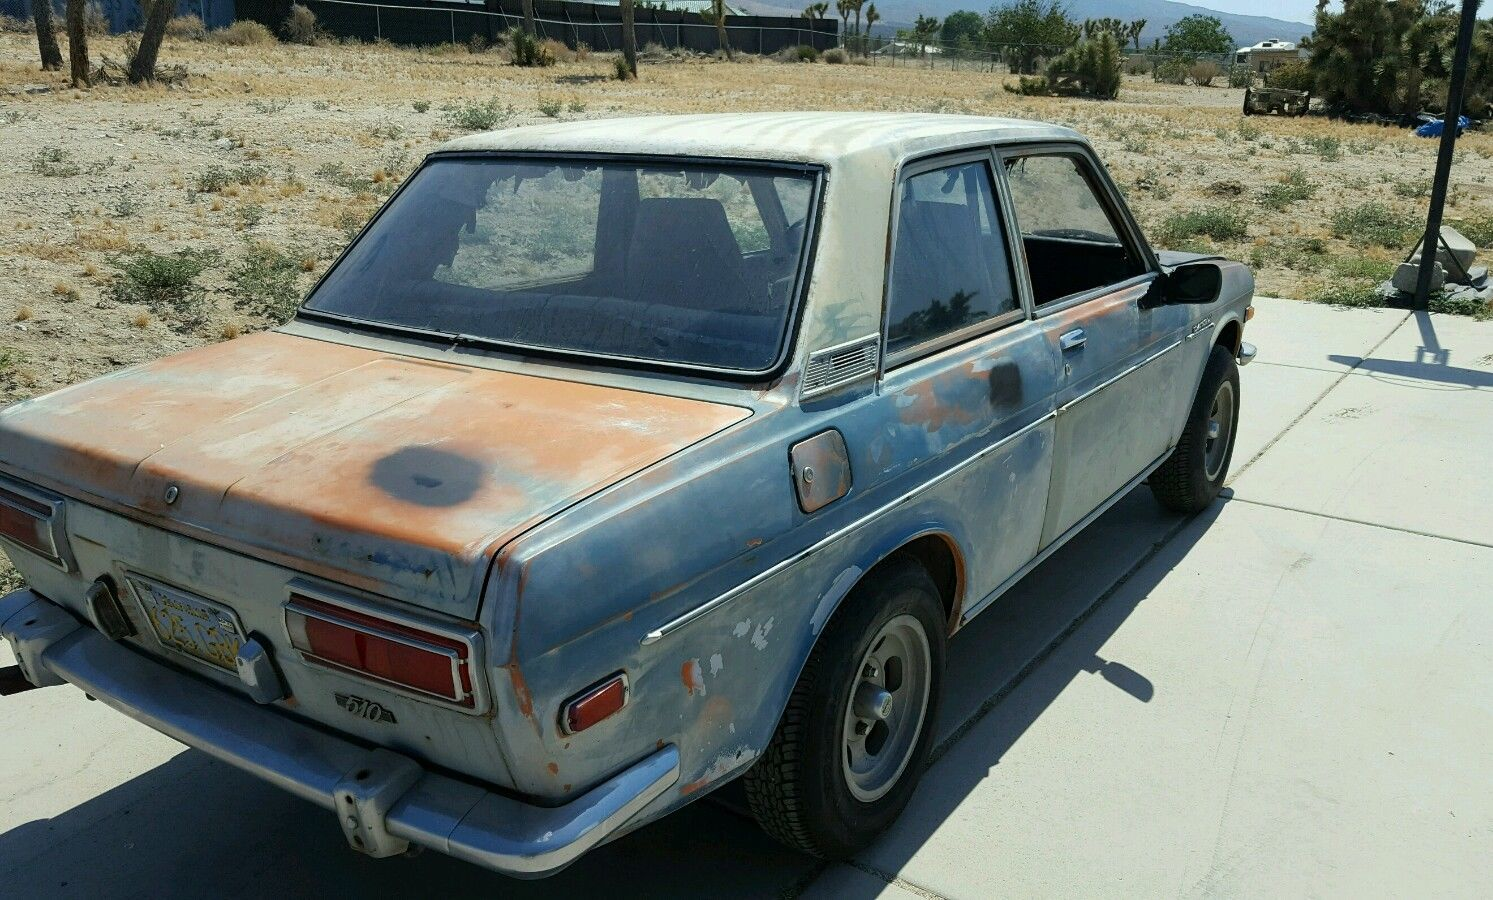 1972 Datsun 510 2 Door Sedan For Sale By Owner In Pinon Hills California